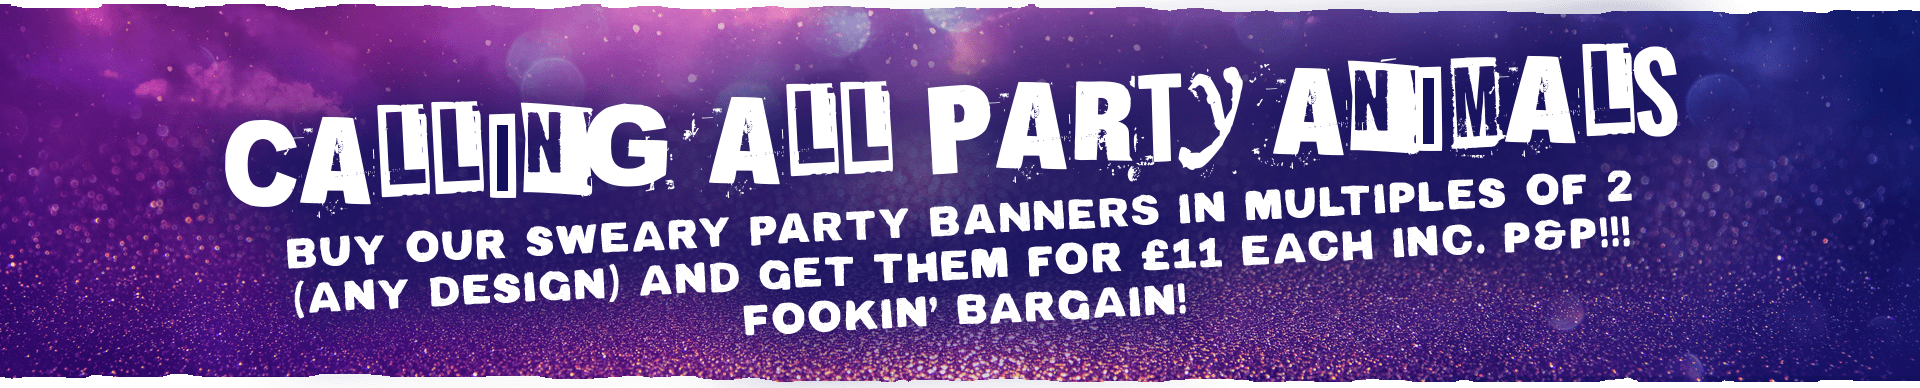 Purple banner with pink glitter and faded blue circles with capitalised white text reading 'Calling All Party Animals', 'Buy Our Sweary Party Banners In Multiples Of 2 (Any Design) And Get Them For £11 Each Inc. P&P!!! Fookin' Bargain!'